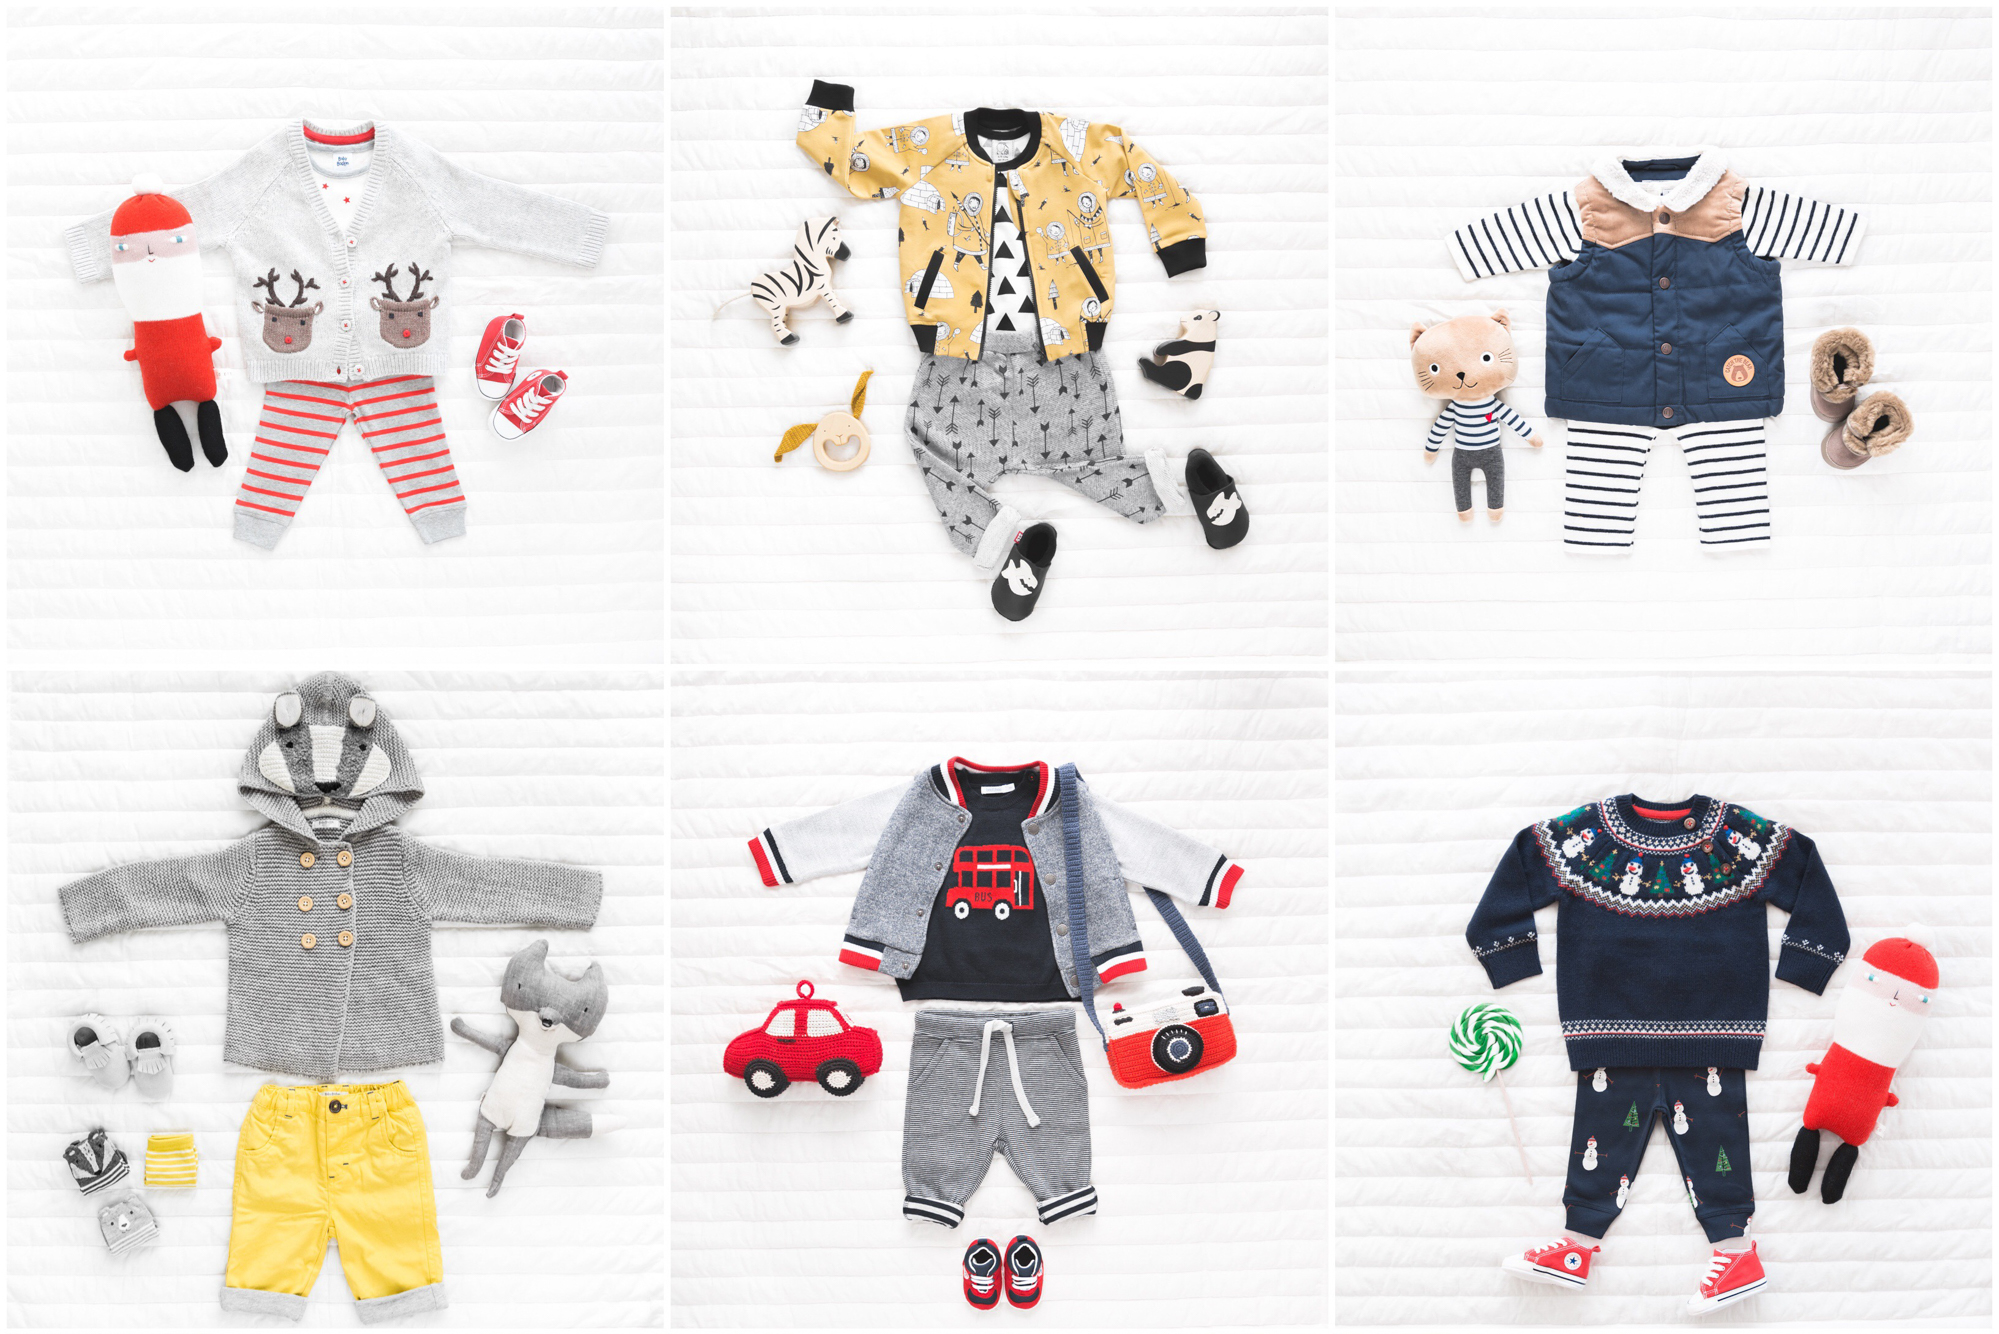 2000_blog_mode_enfants_garcon_mini_looks_laredoute_ikks_baby_boden_boy_copyright_pauline_paulinefashionblog_com-1-2